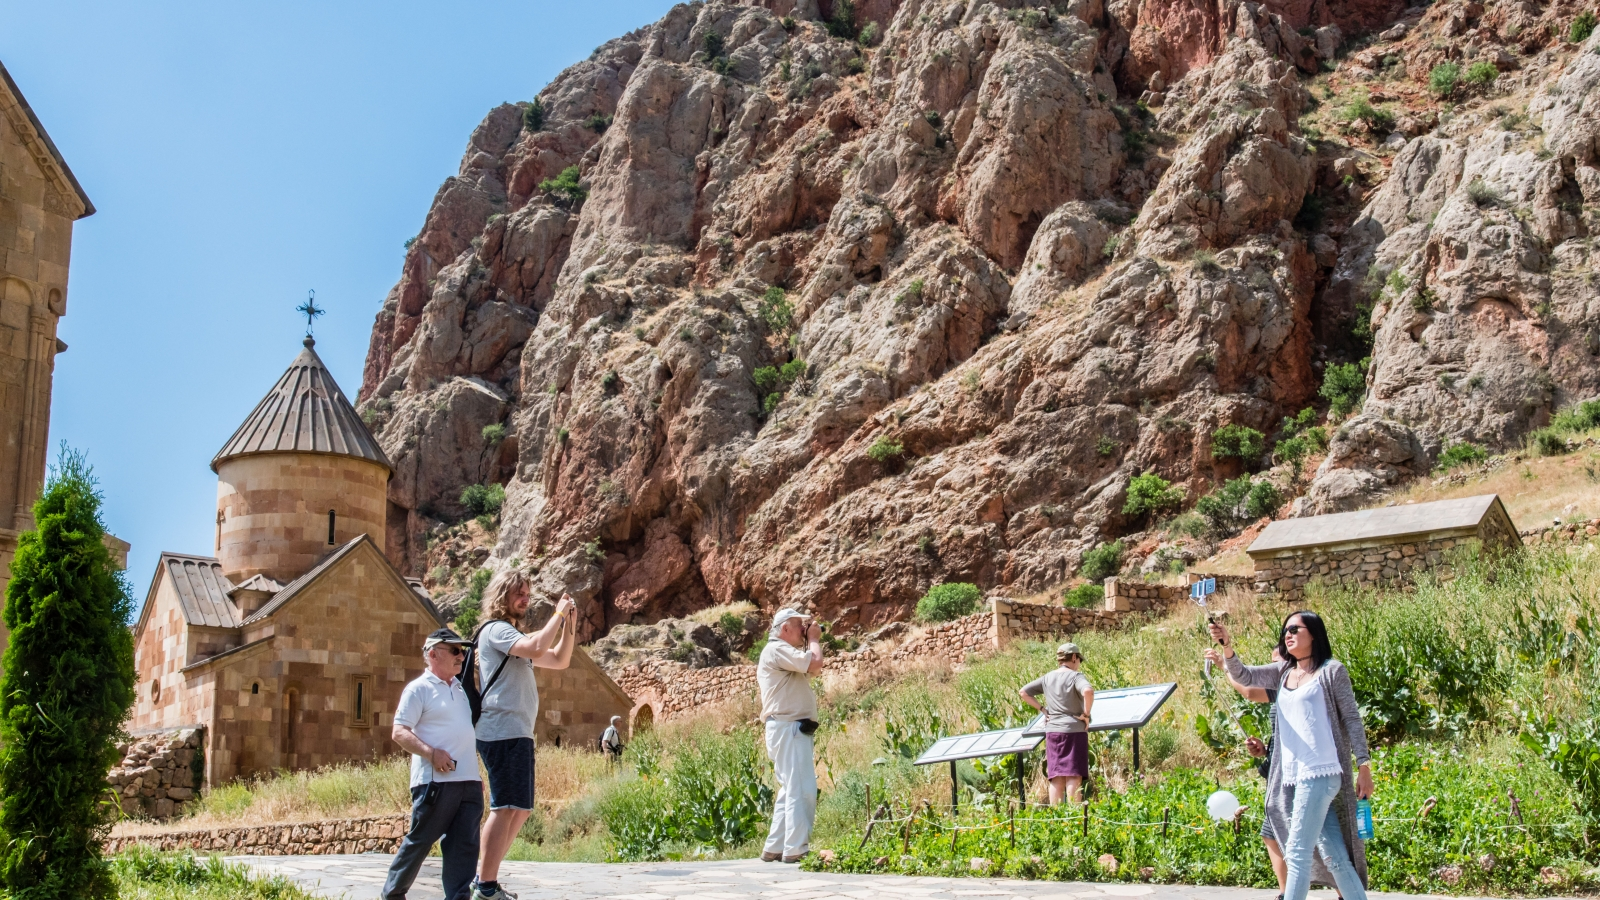 Noravank monastery complex is one of foreign tourists' favorite destinations